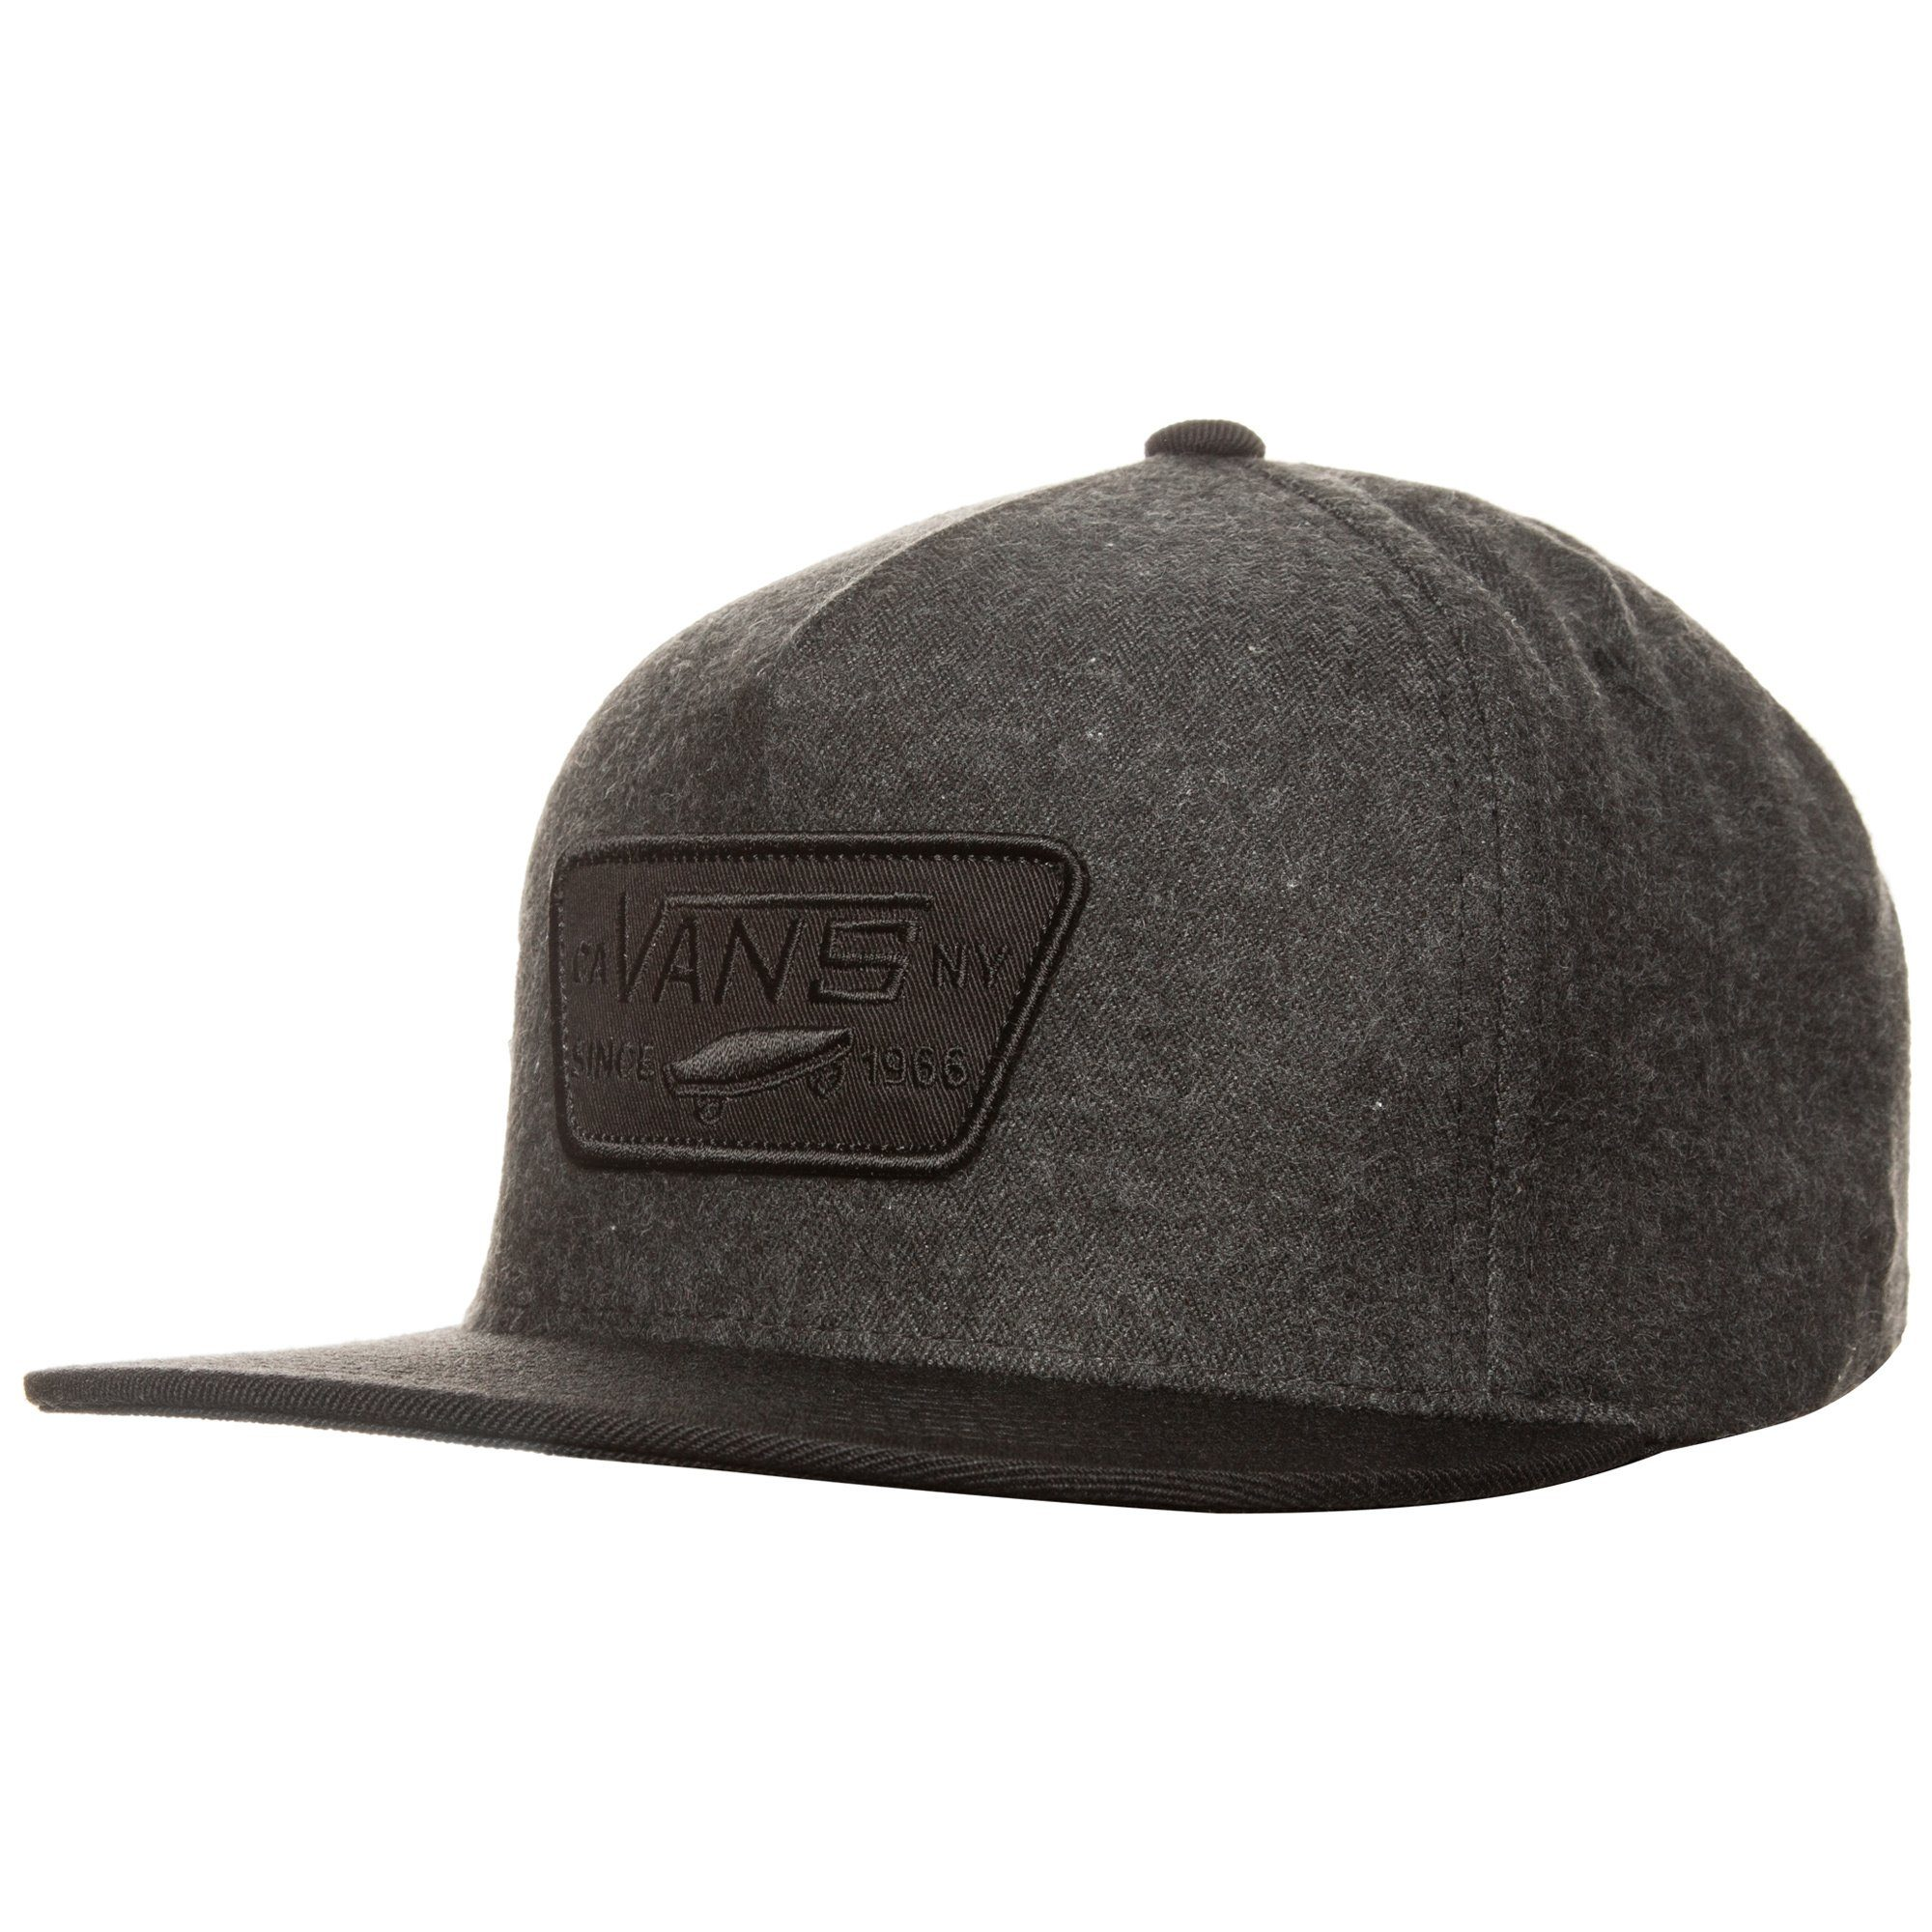 Vans Snapback Cap »Full Patch«